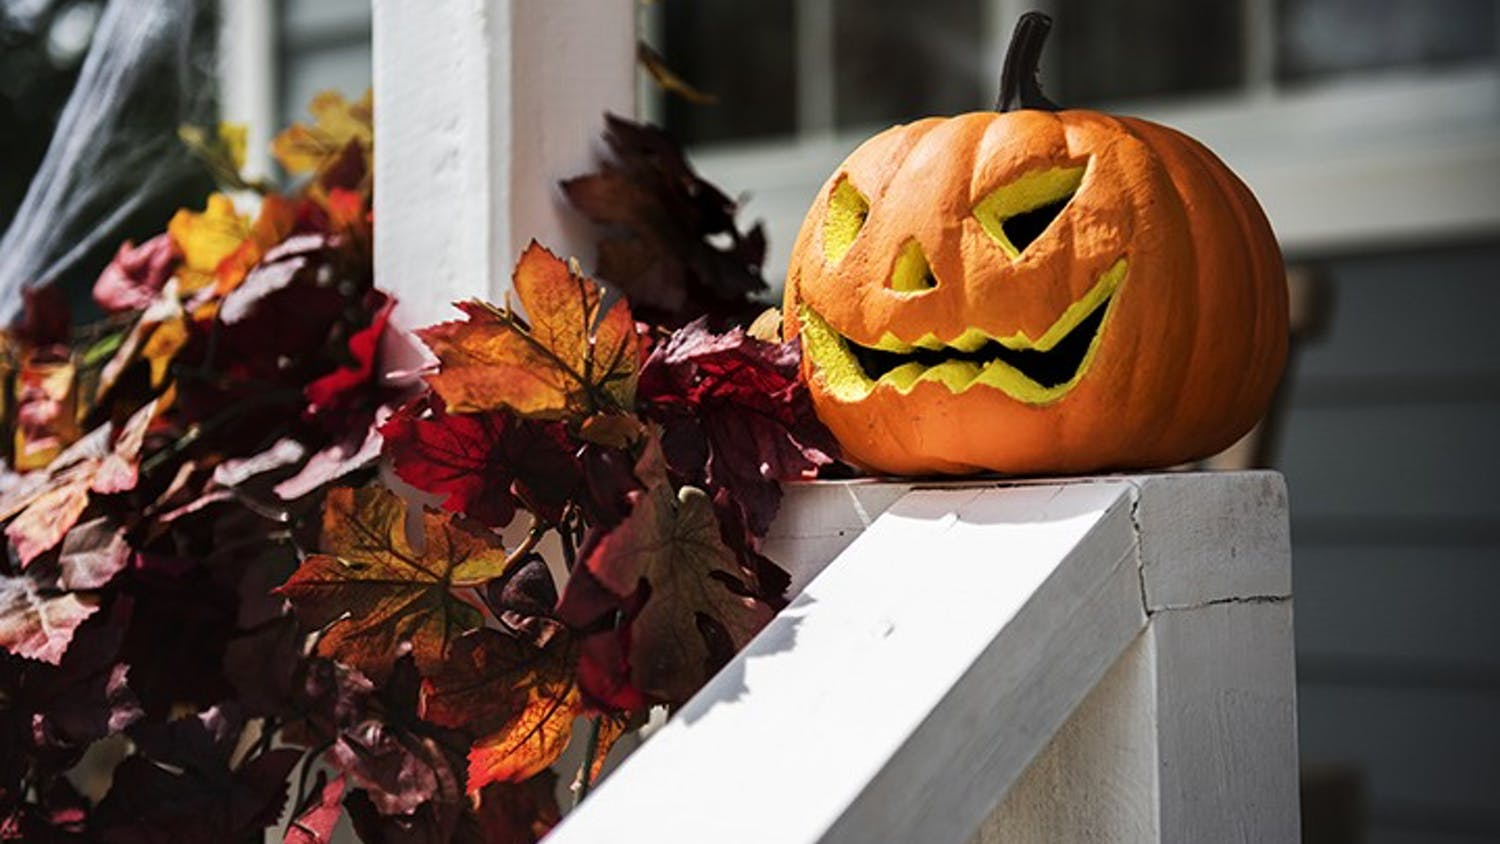 A jack-o'-lantern sits on top of a railing. Carving pumpkins into jack-o'-lanterns is often a popular fall activity.